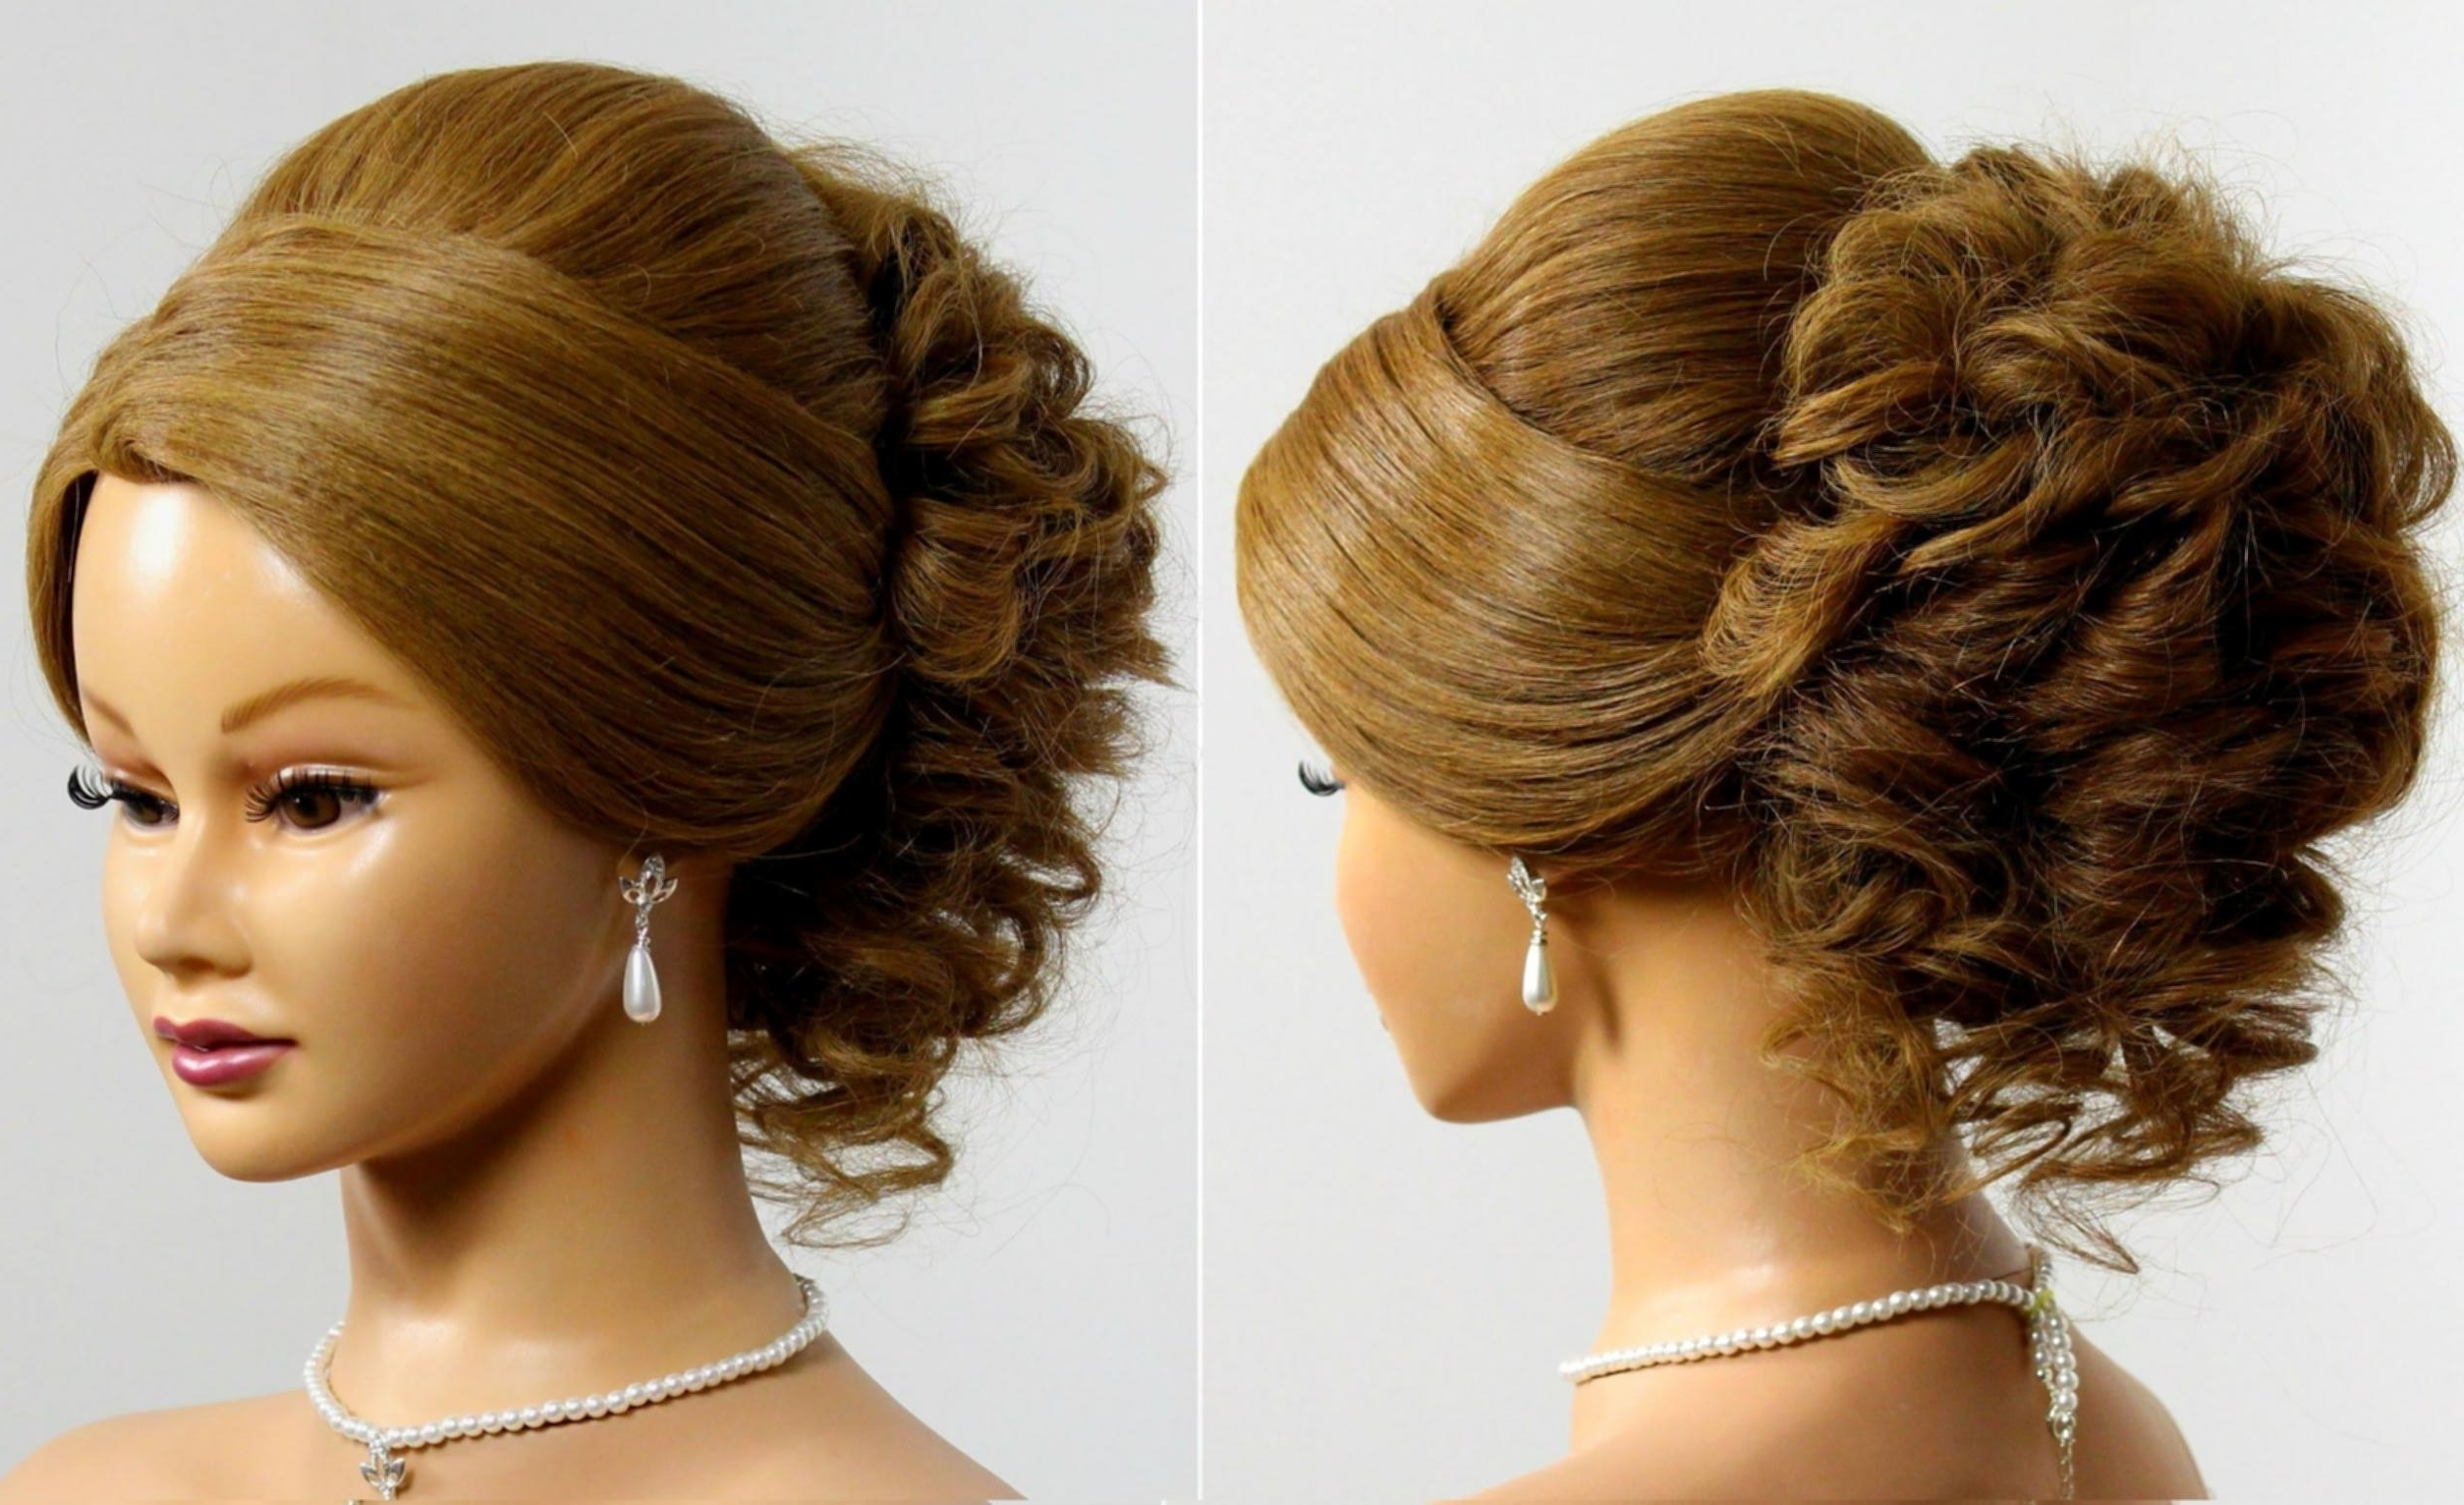 Simple Hairdo For Medium Hair Formal Updo For Medium Hair Prom Within Medium Hair Prom Updo Hairstyles (View 7 of 15)